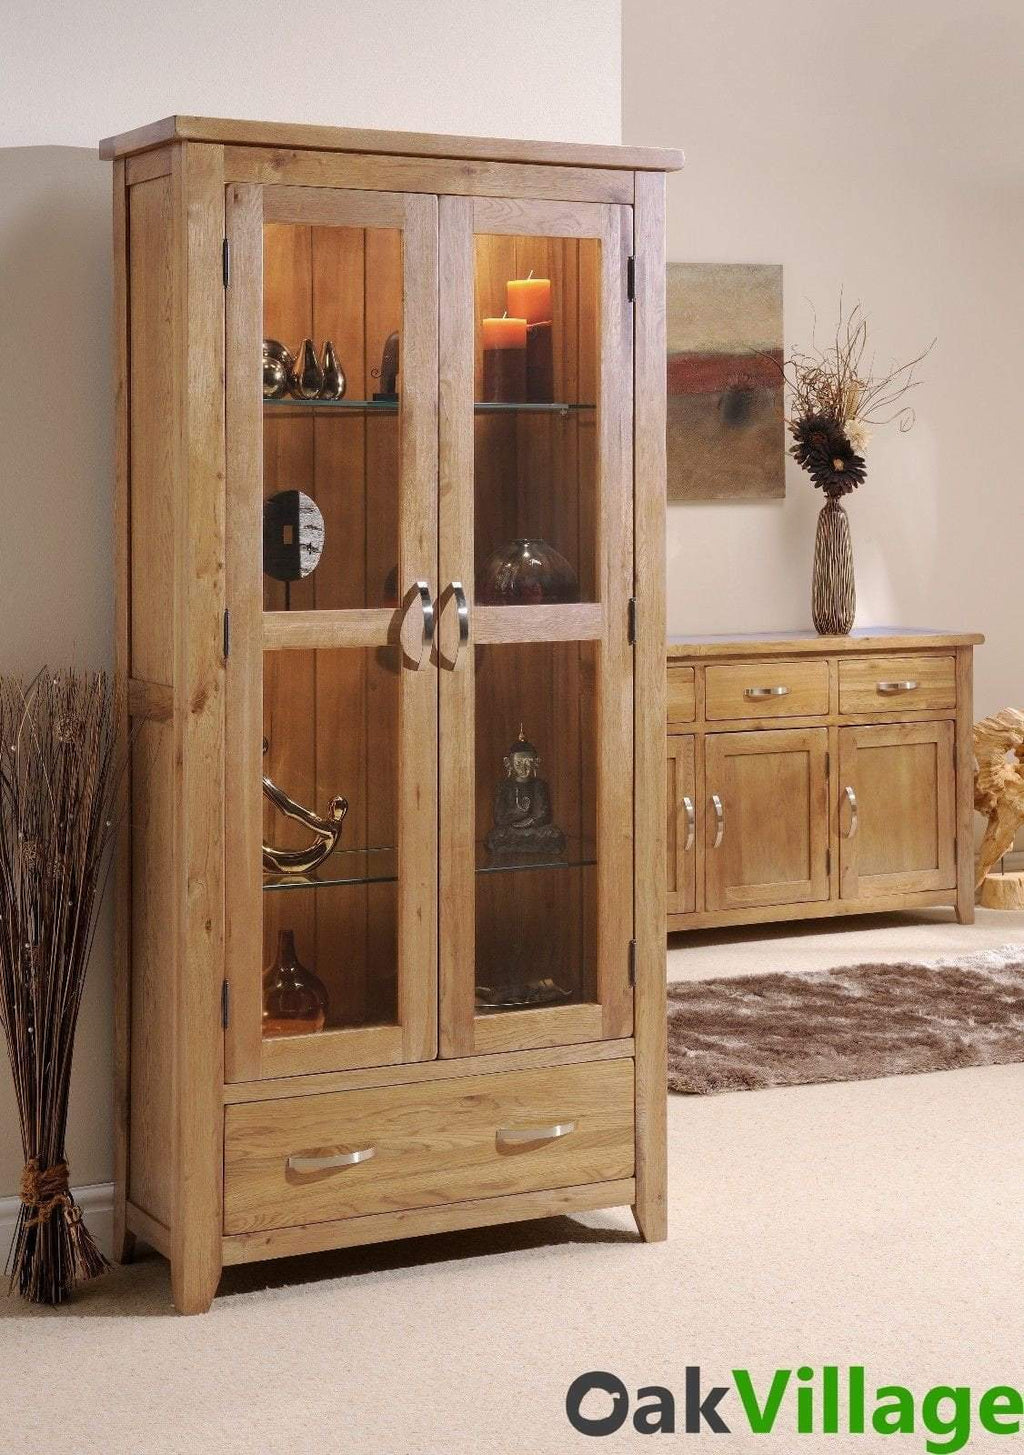 Oakworth Oak 2 Door Glass Display Unit - Oak Village